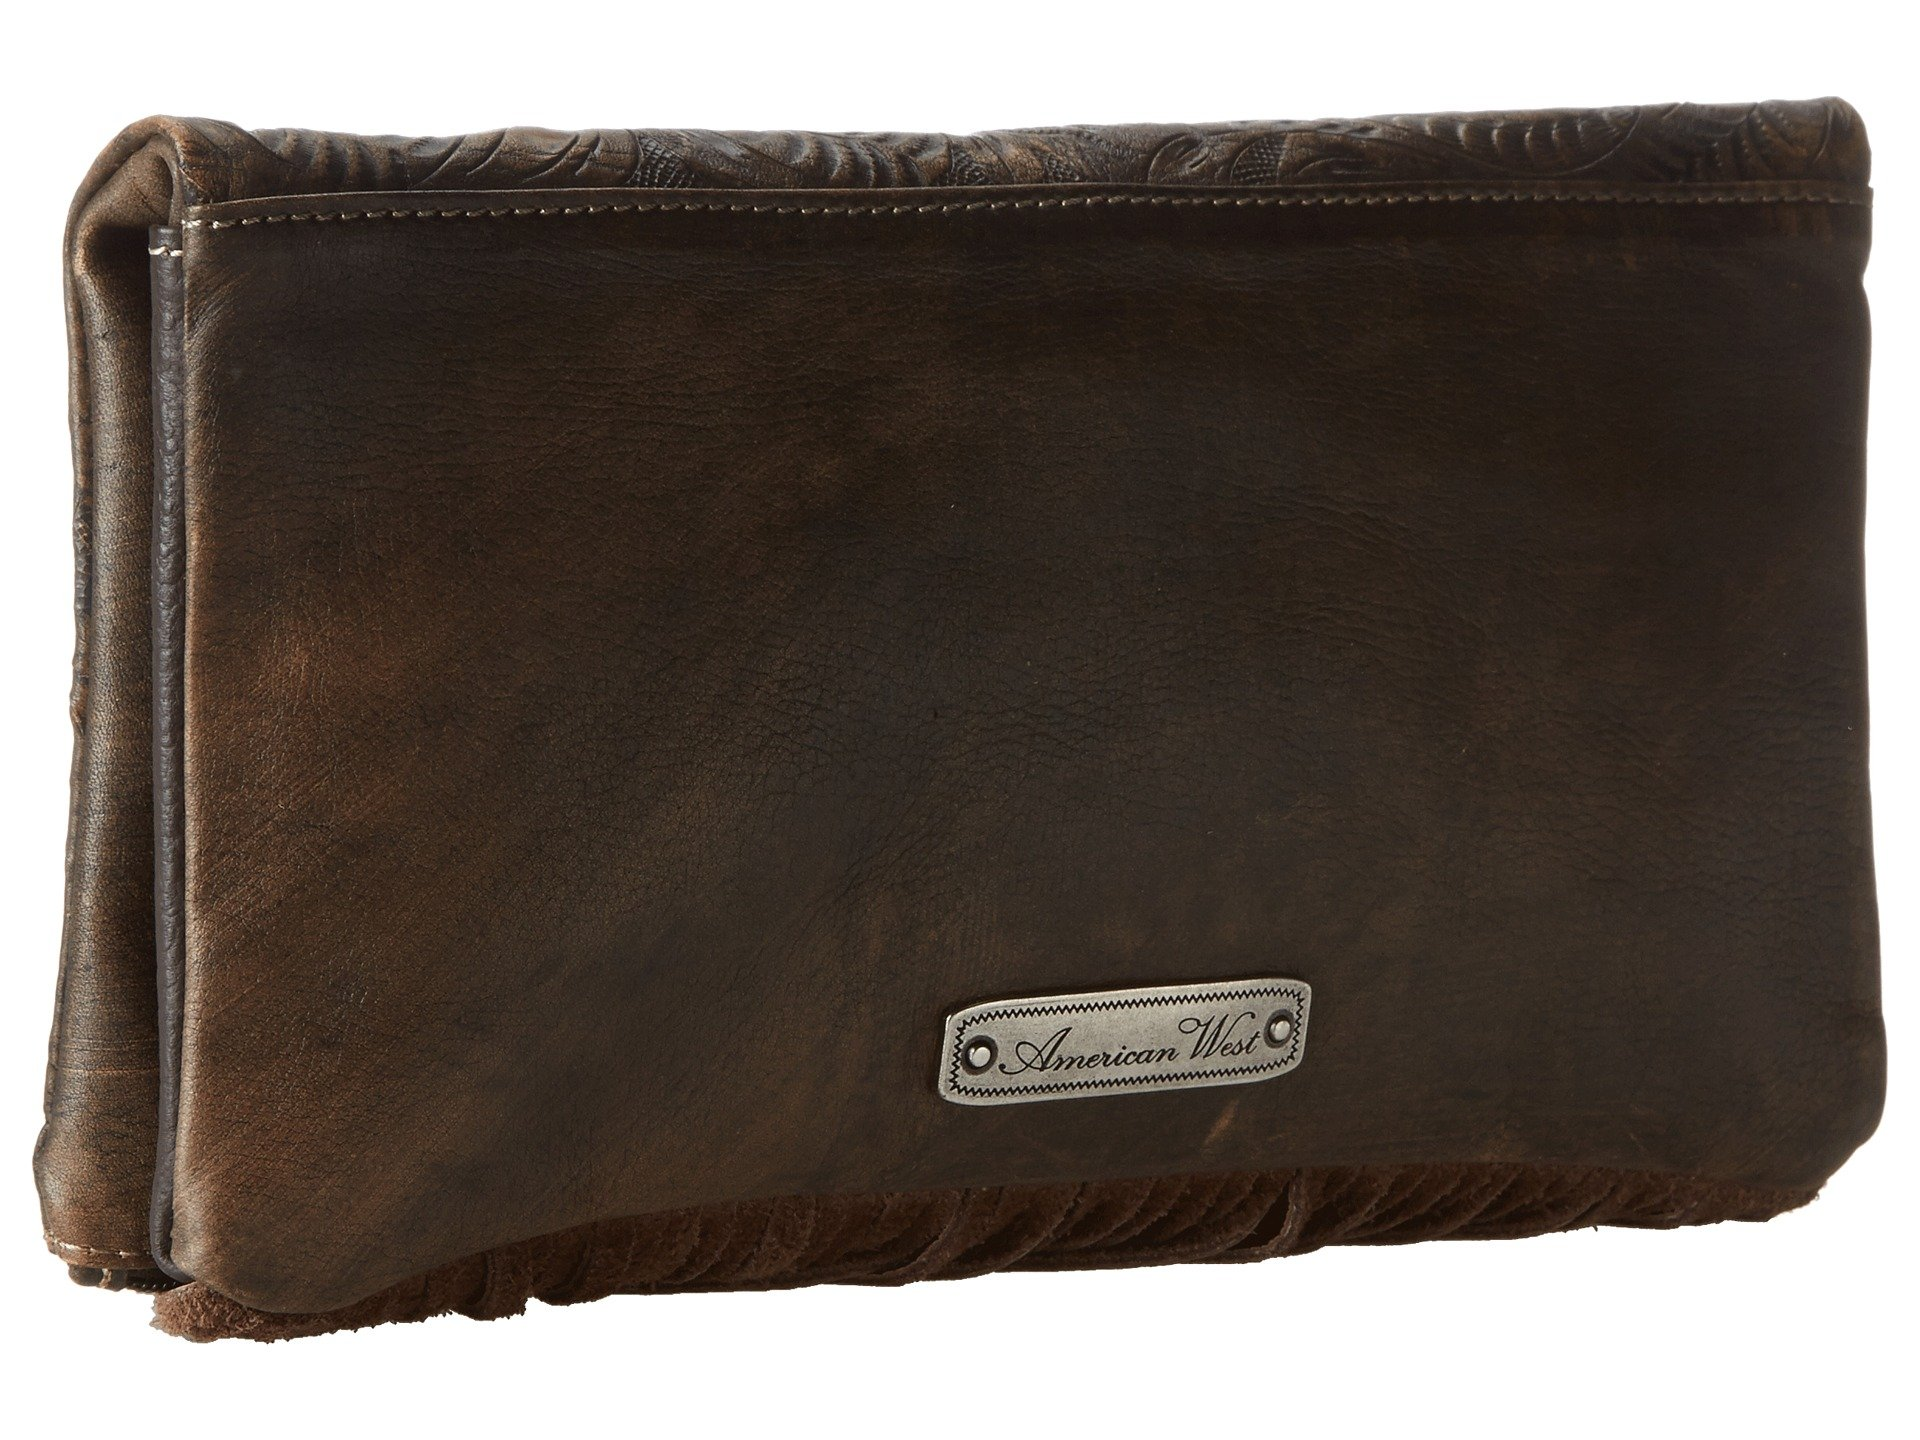 Brown Rockabilly Charcoal Clutch American West Distressed Folded Yqx085